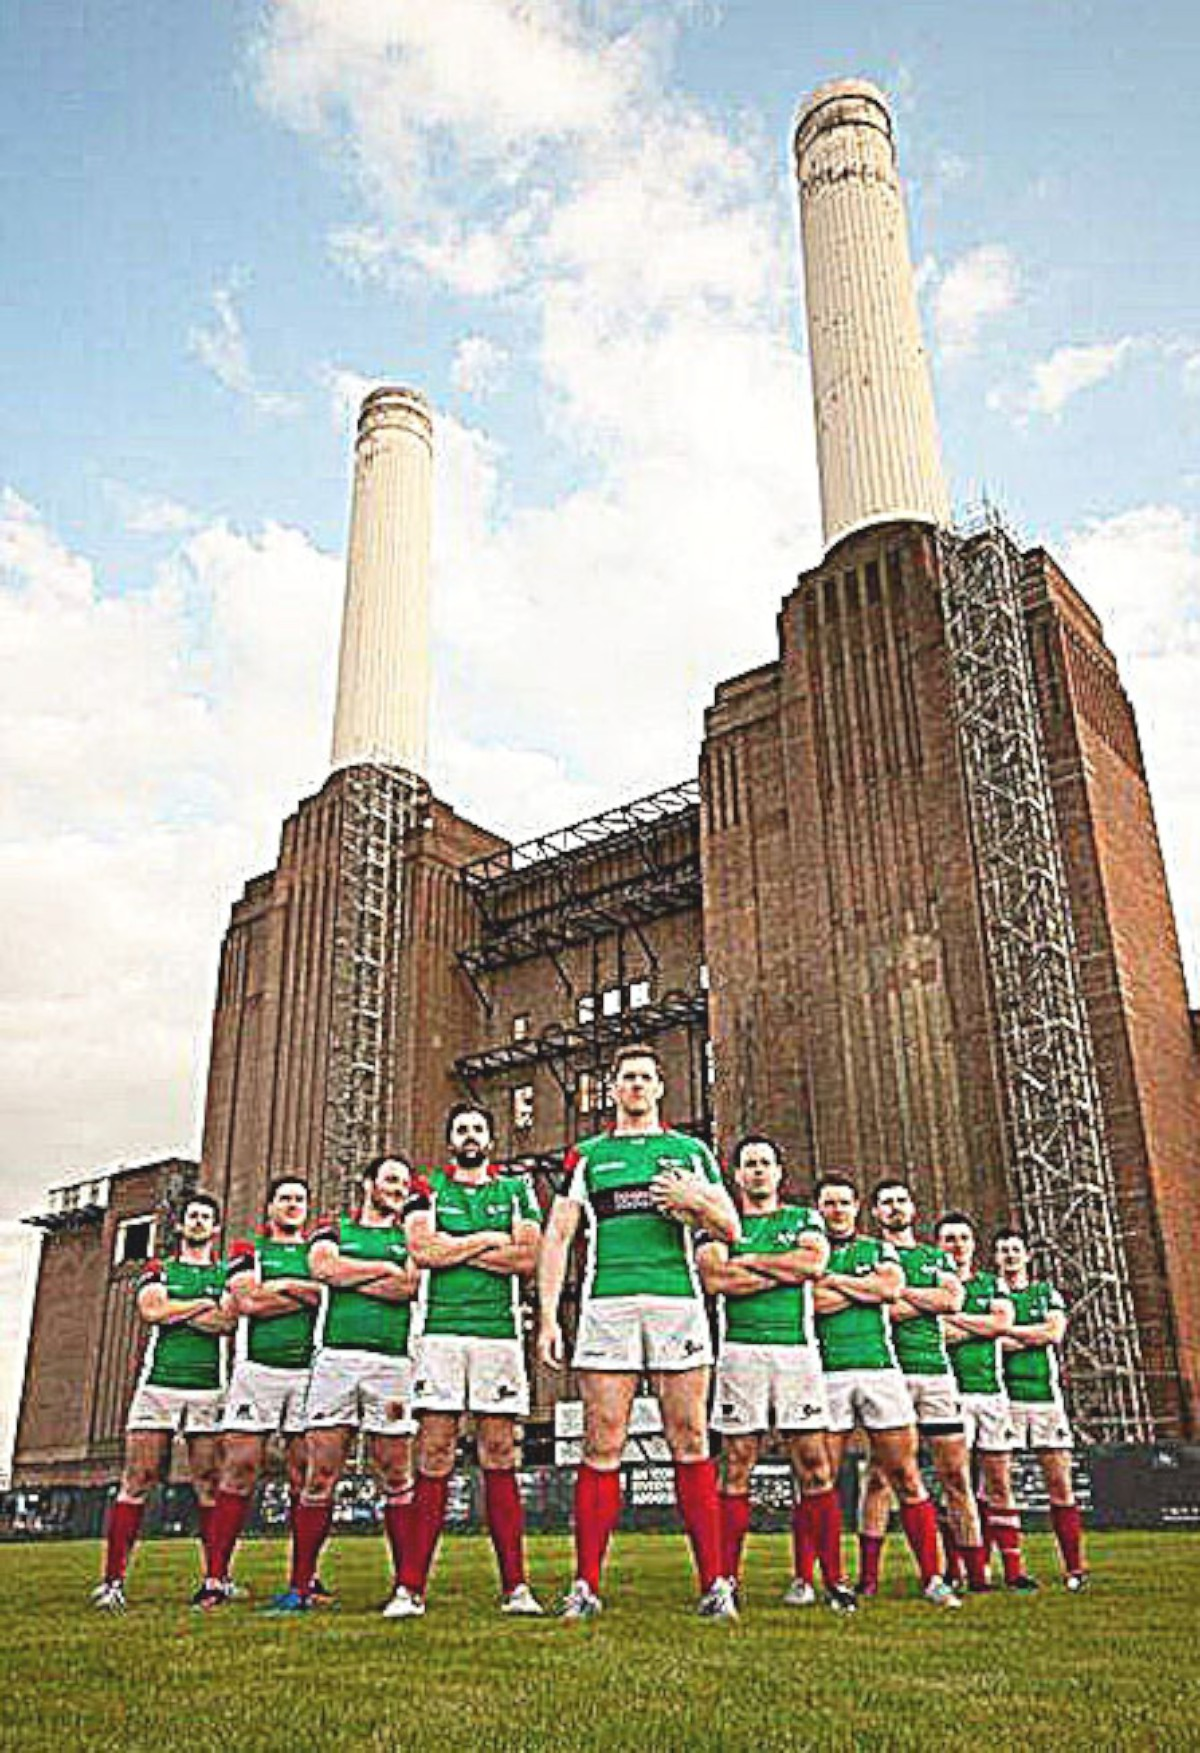 None shall pass: Colin O'Keeffe will lead his Battersea Ironsides out on Saturday hoping they can overcome the final hurdle and reach the national